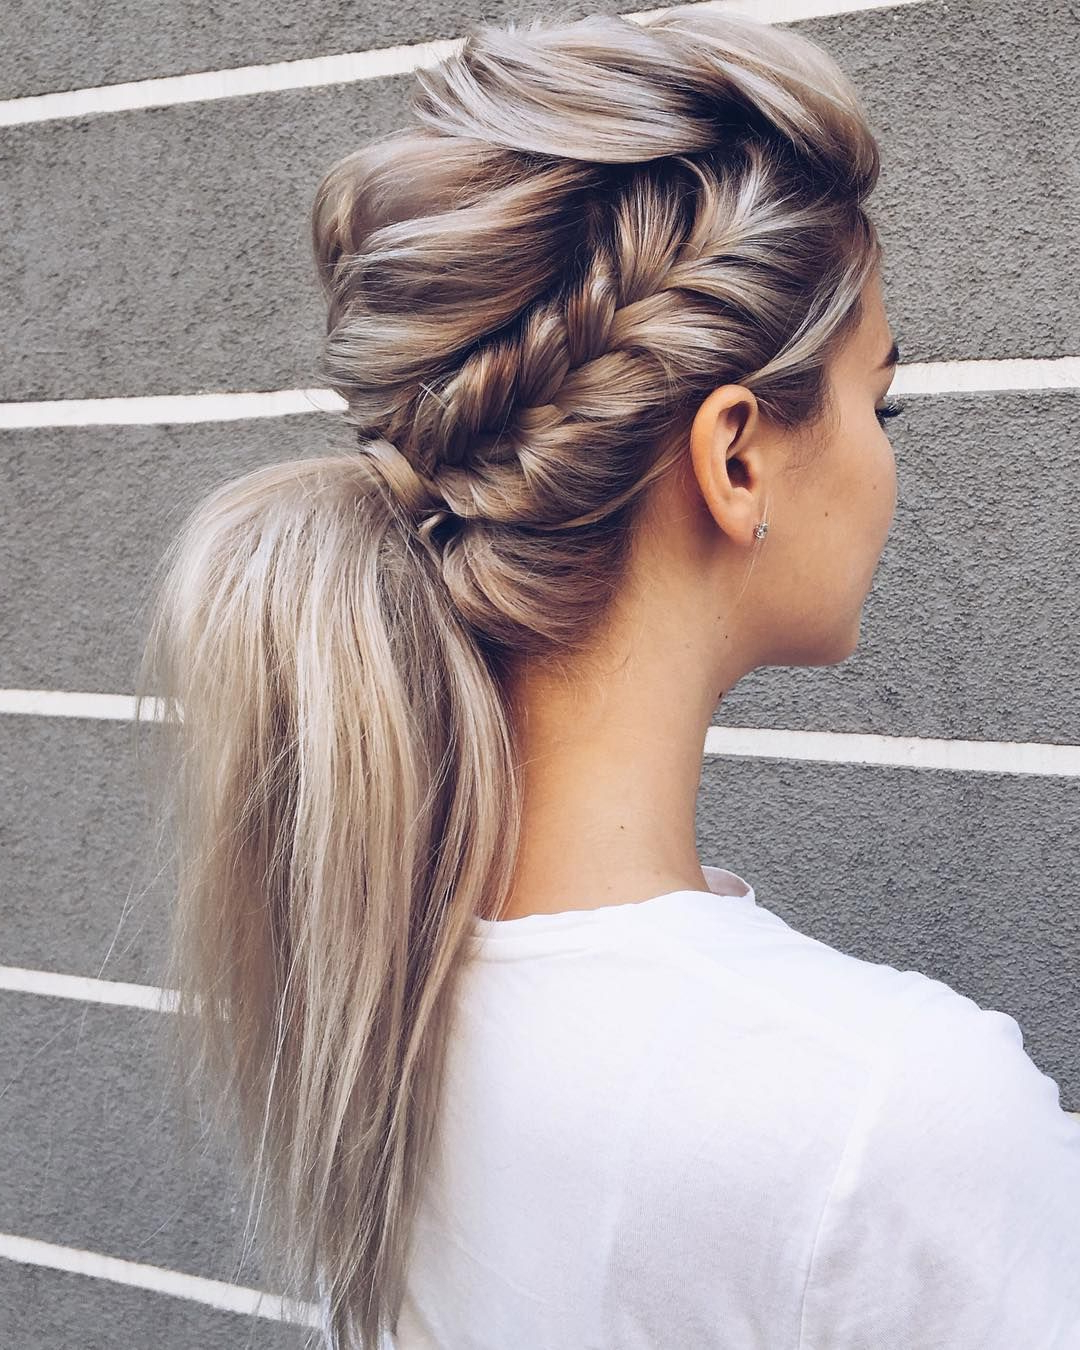 2020 Braided Ponytails Updo Hairstyles Throughout Beautiful Braid And Ponytail Hairstyle , Fishtail Braided (View 7 of 20)